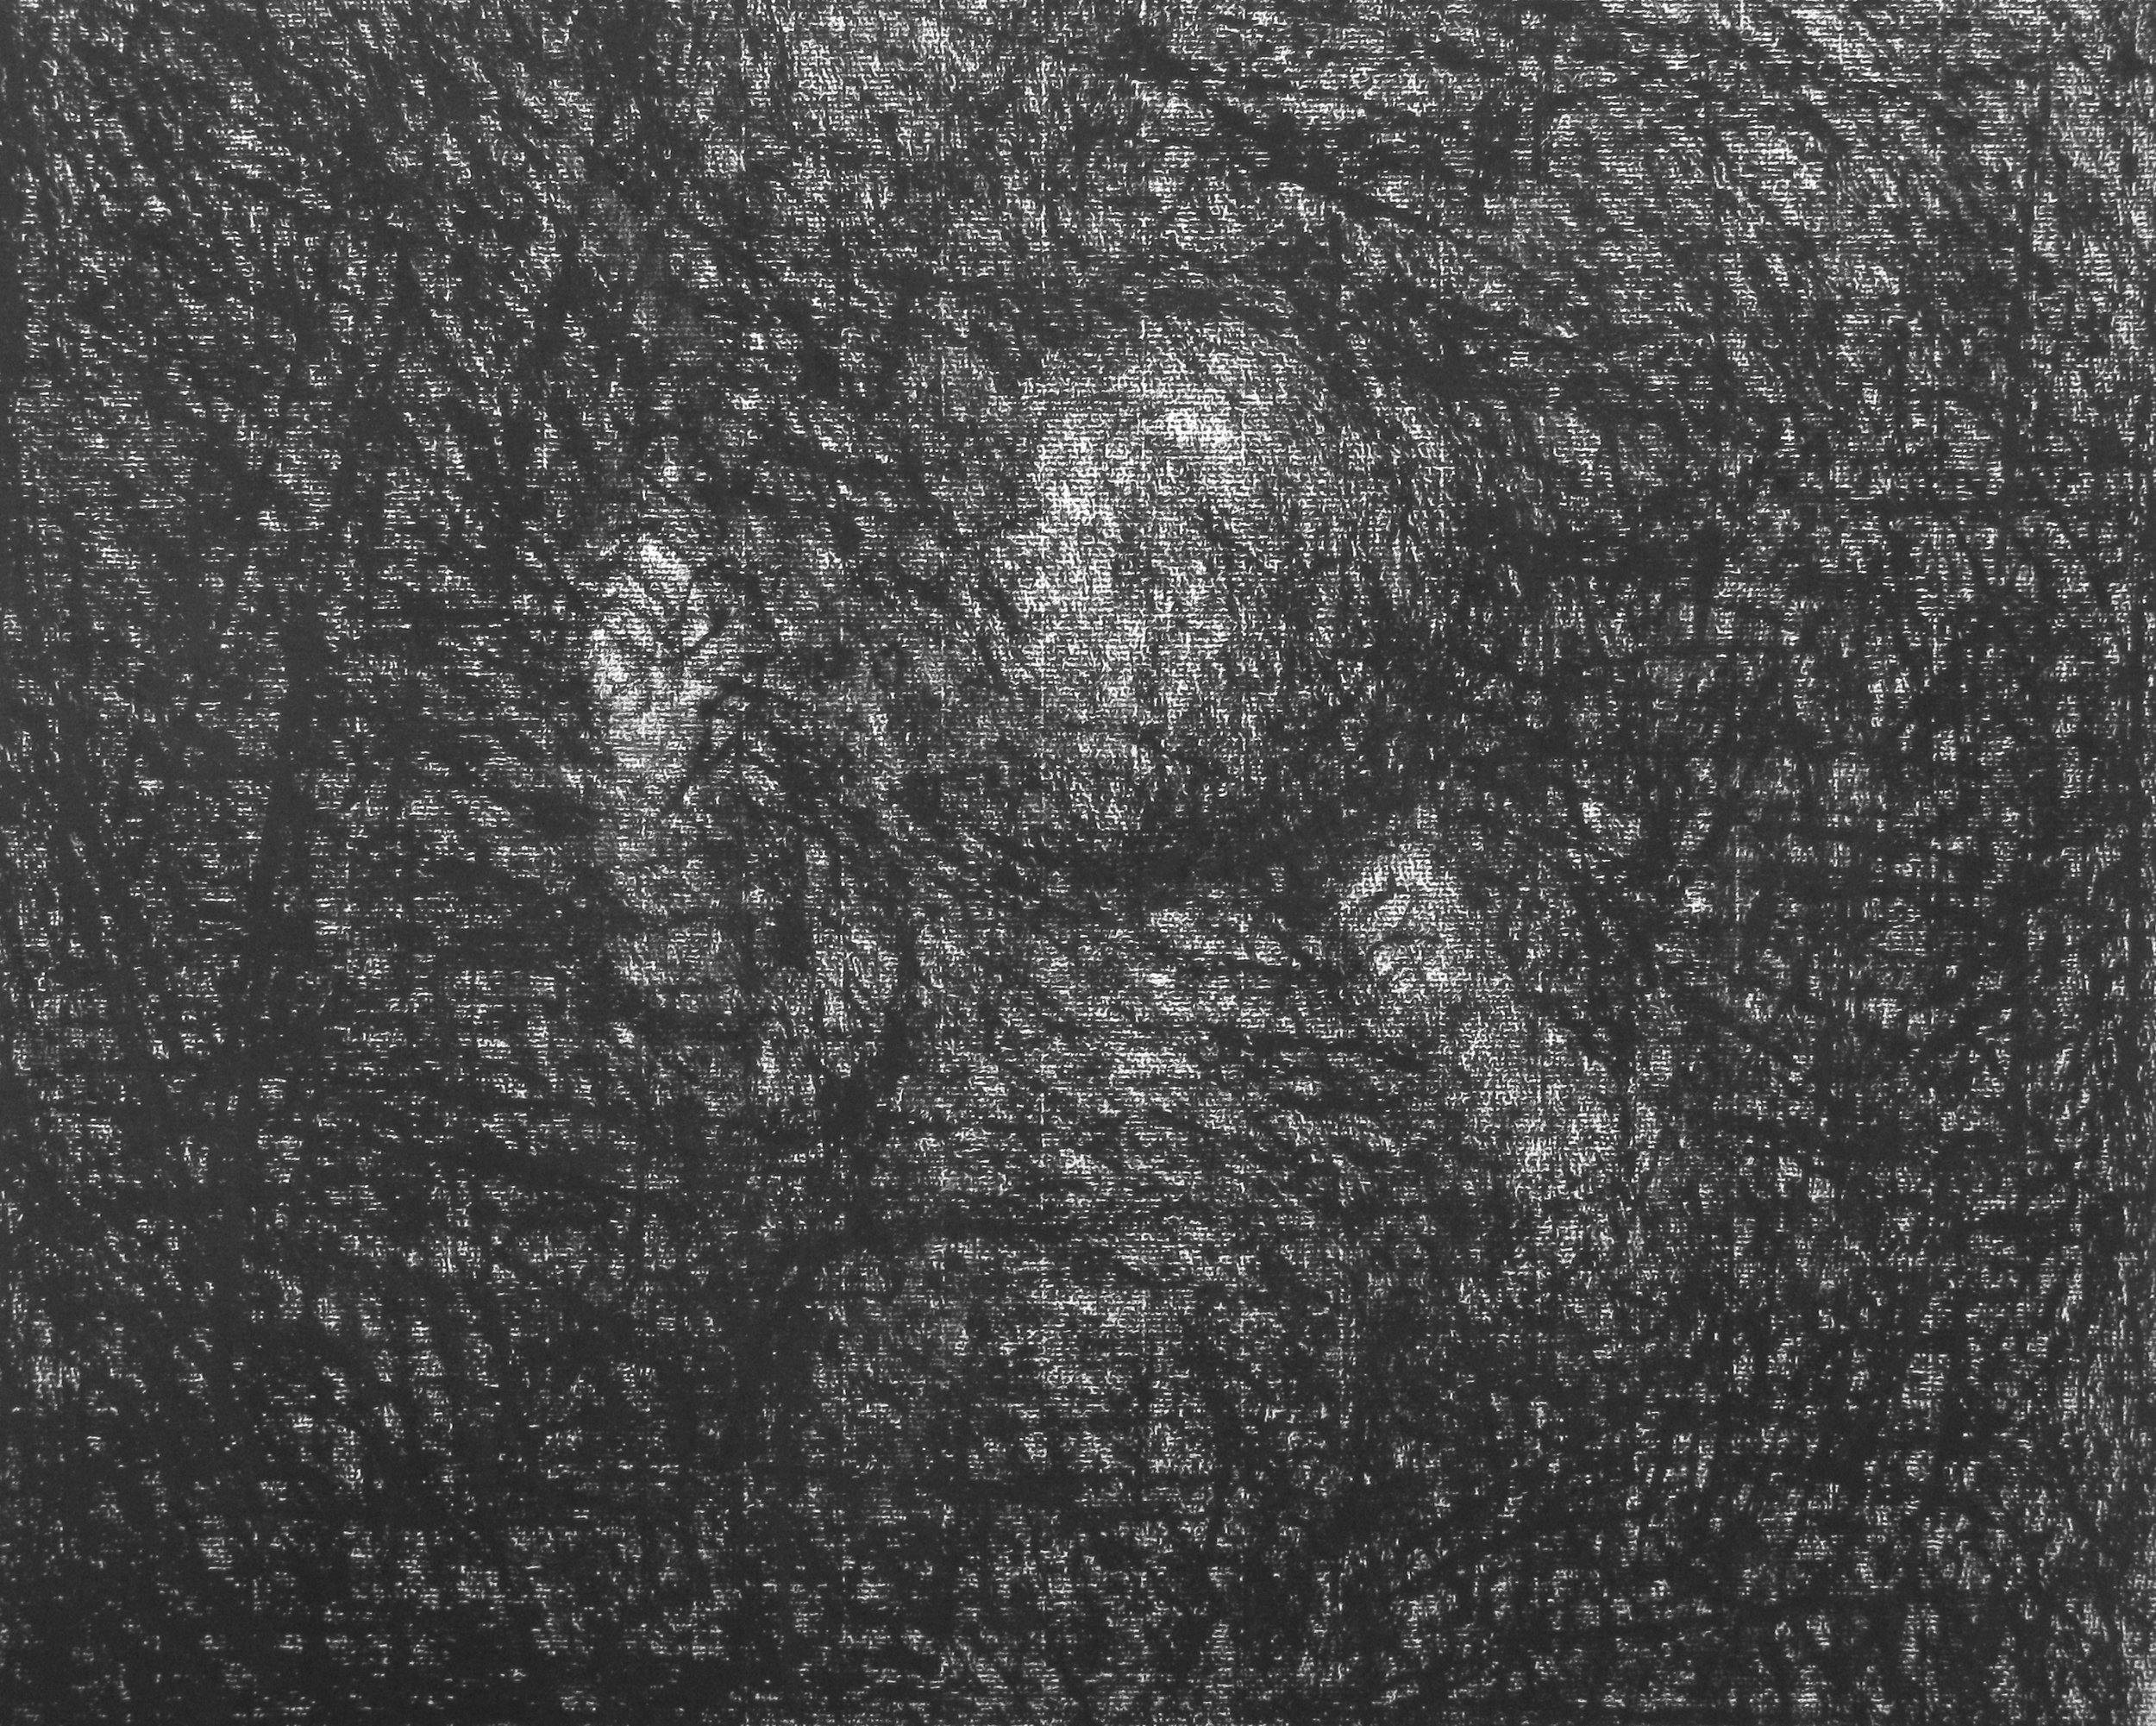 Untitled#7,charcoal,54x45cms.JPG